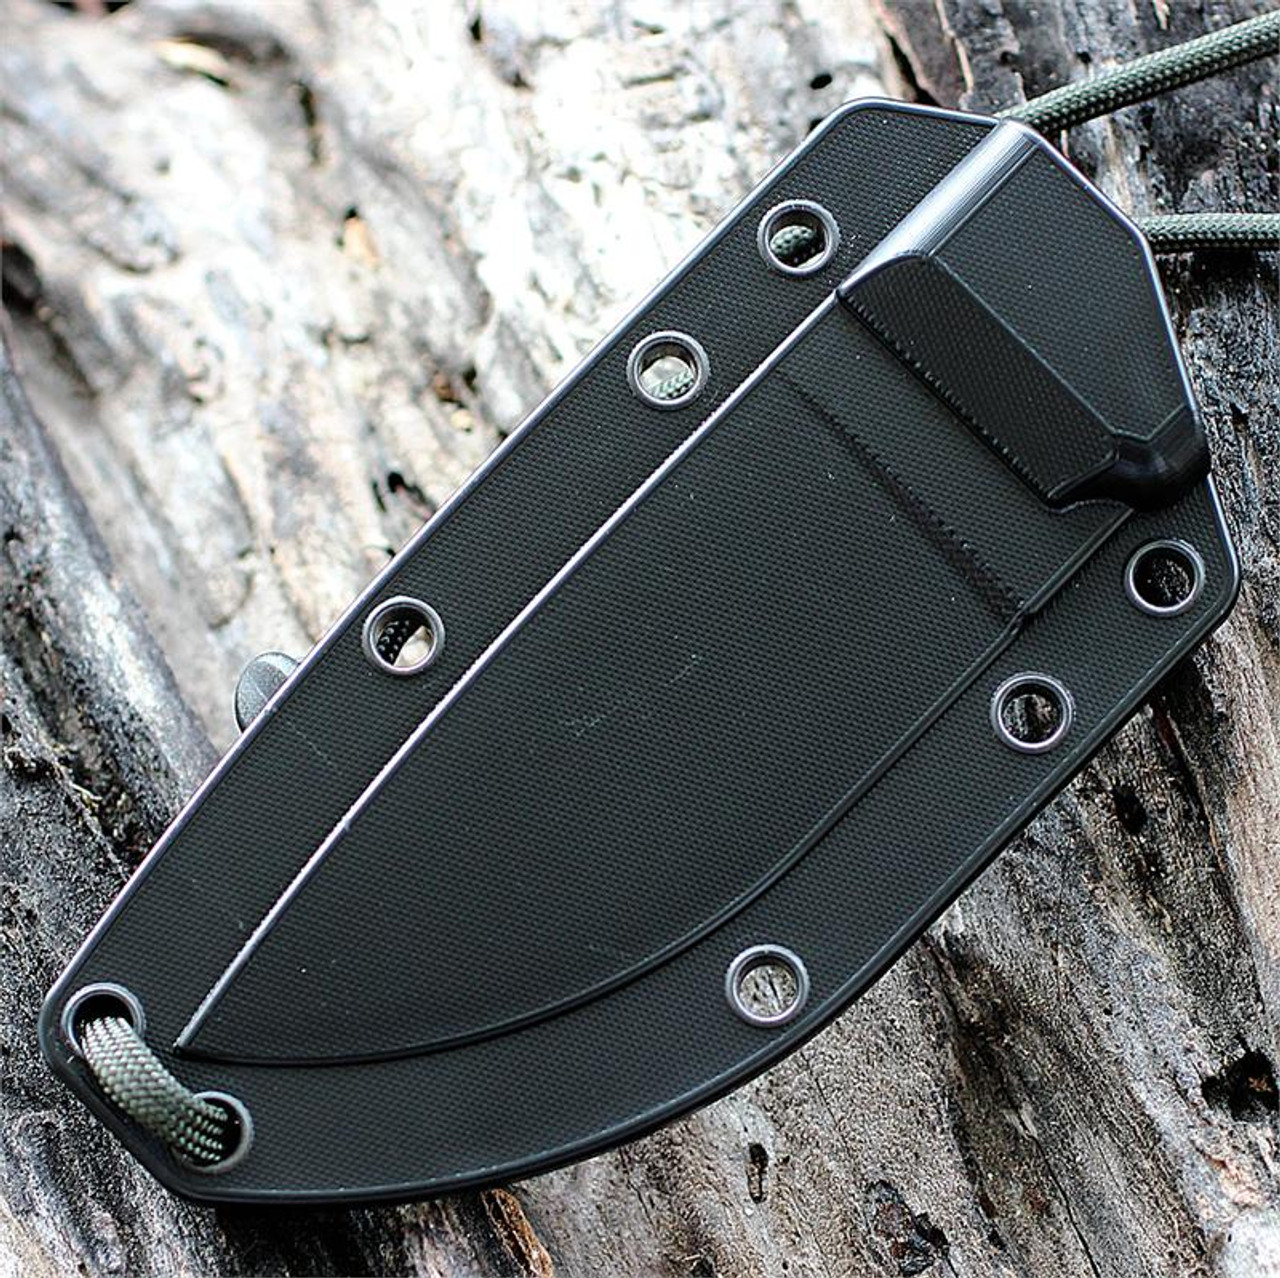 ESEE Knives, 3S-TG-B Tactical Gray Partially Serrated Edge with Black G-10 Handles and Molded Sheath